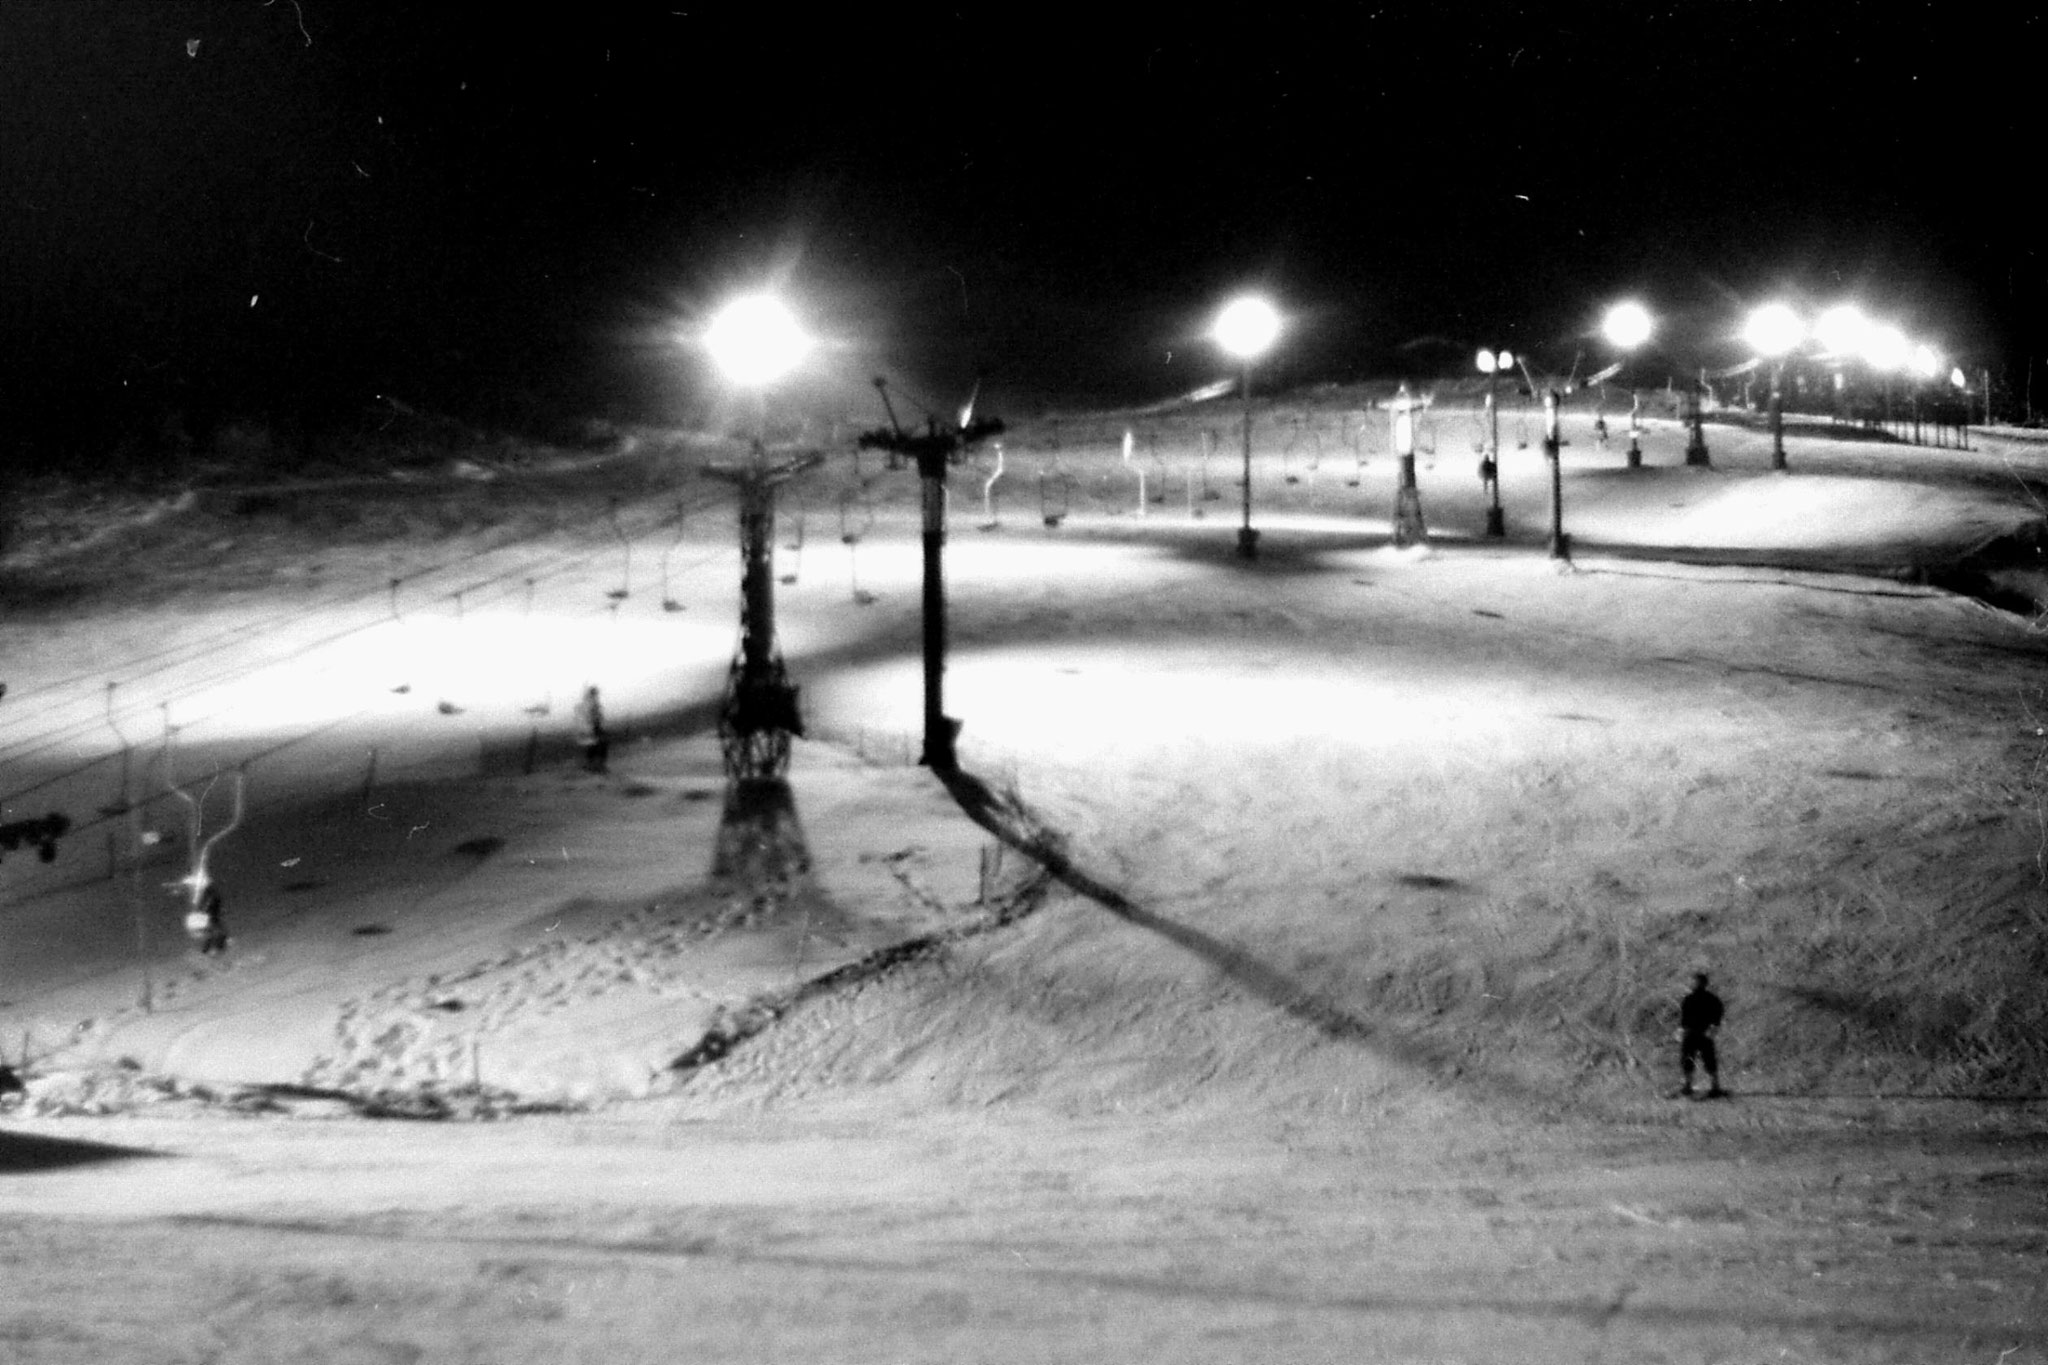 11/1/1989: 1: Floodlit ski slope outside hostel at Asahigawa